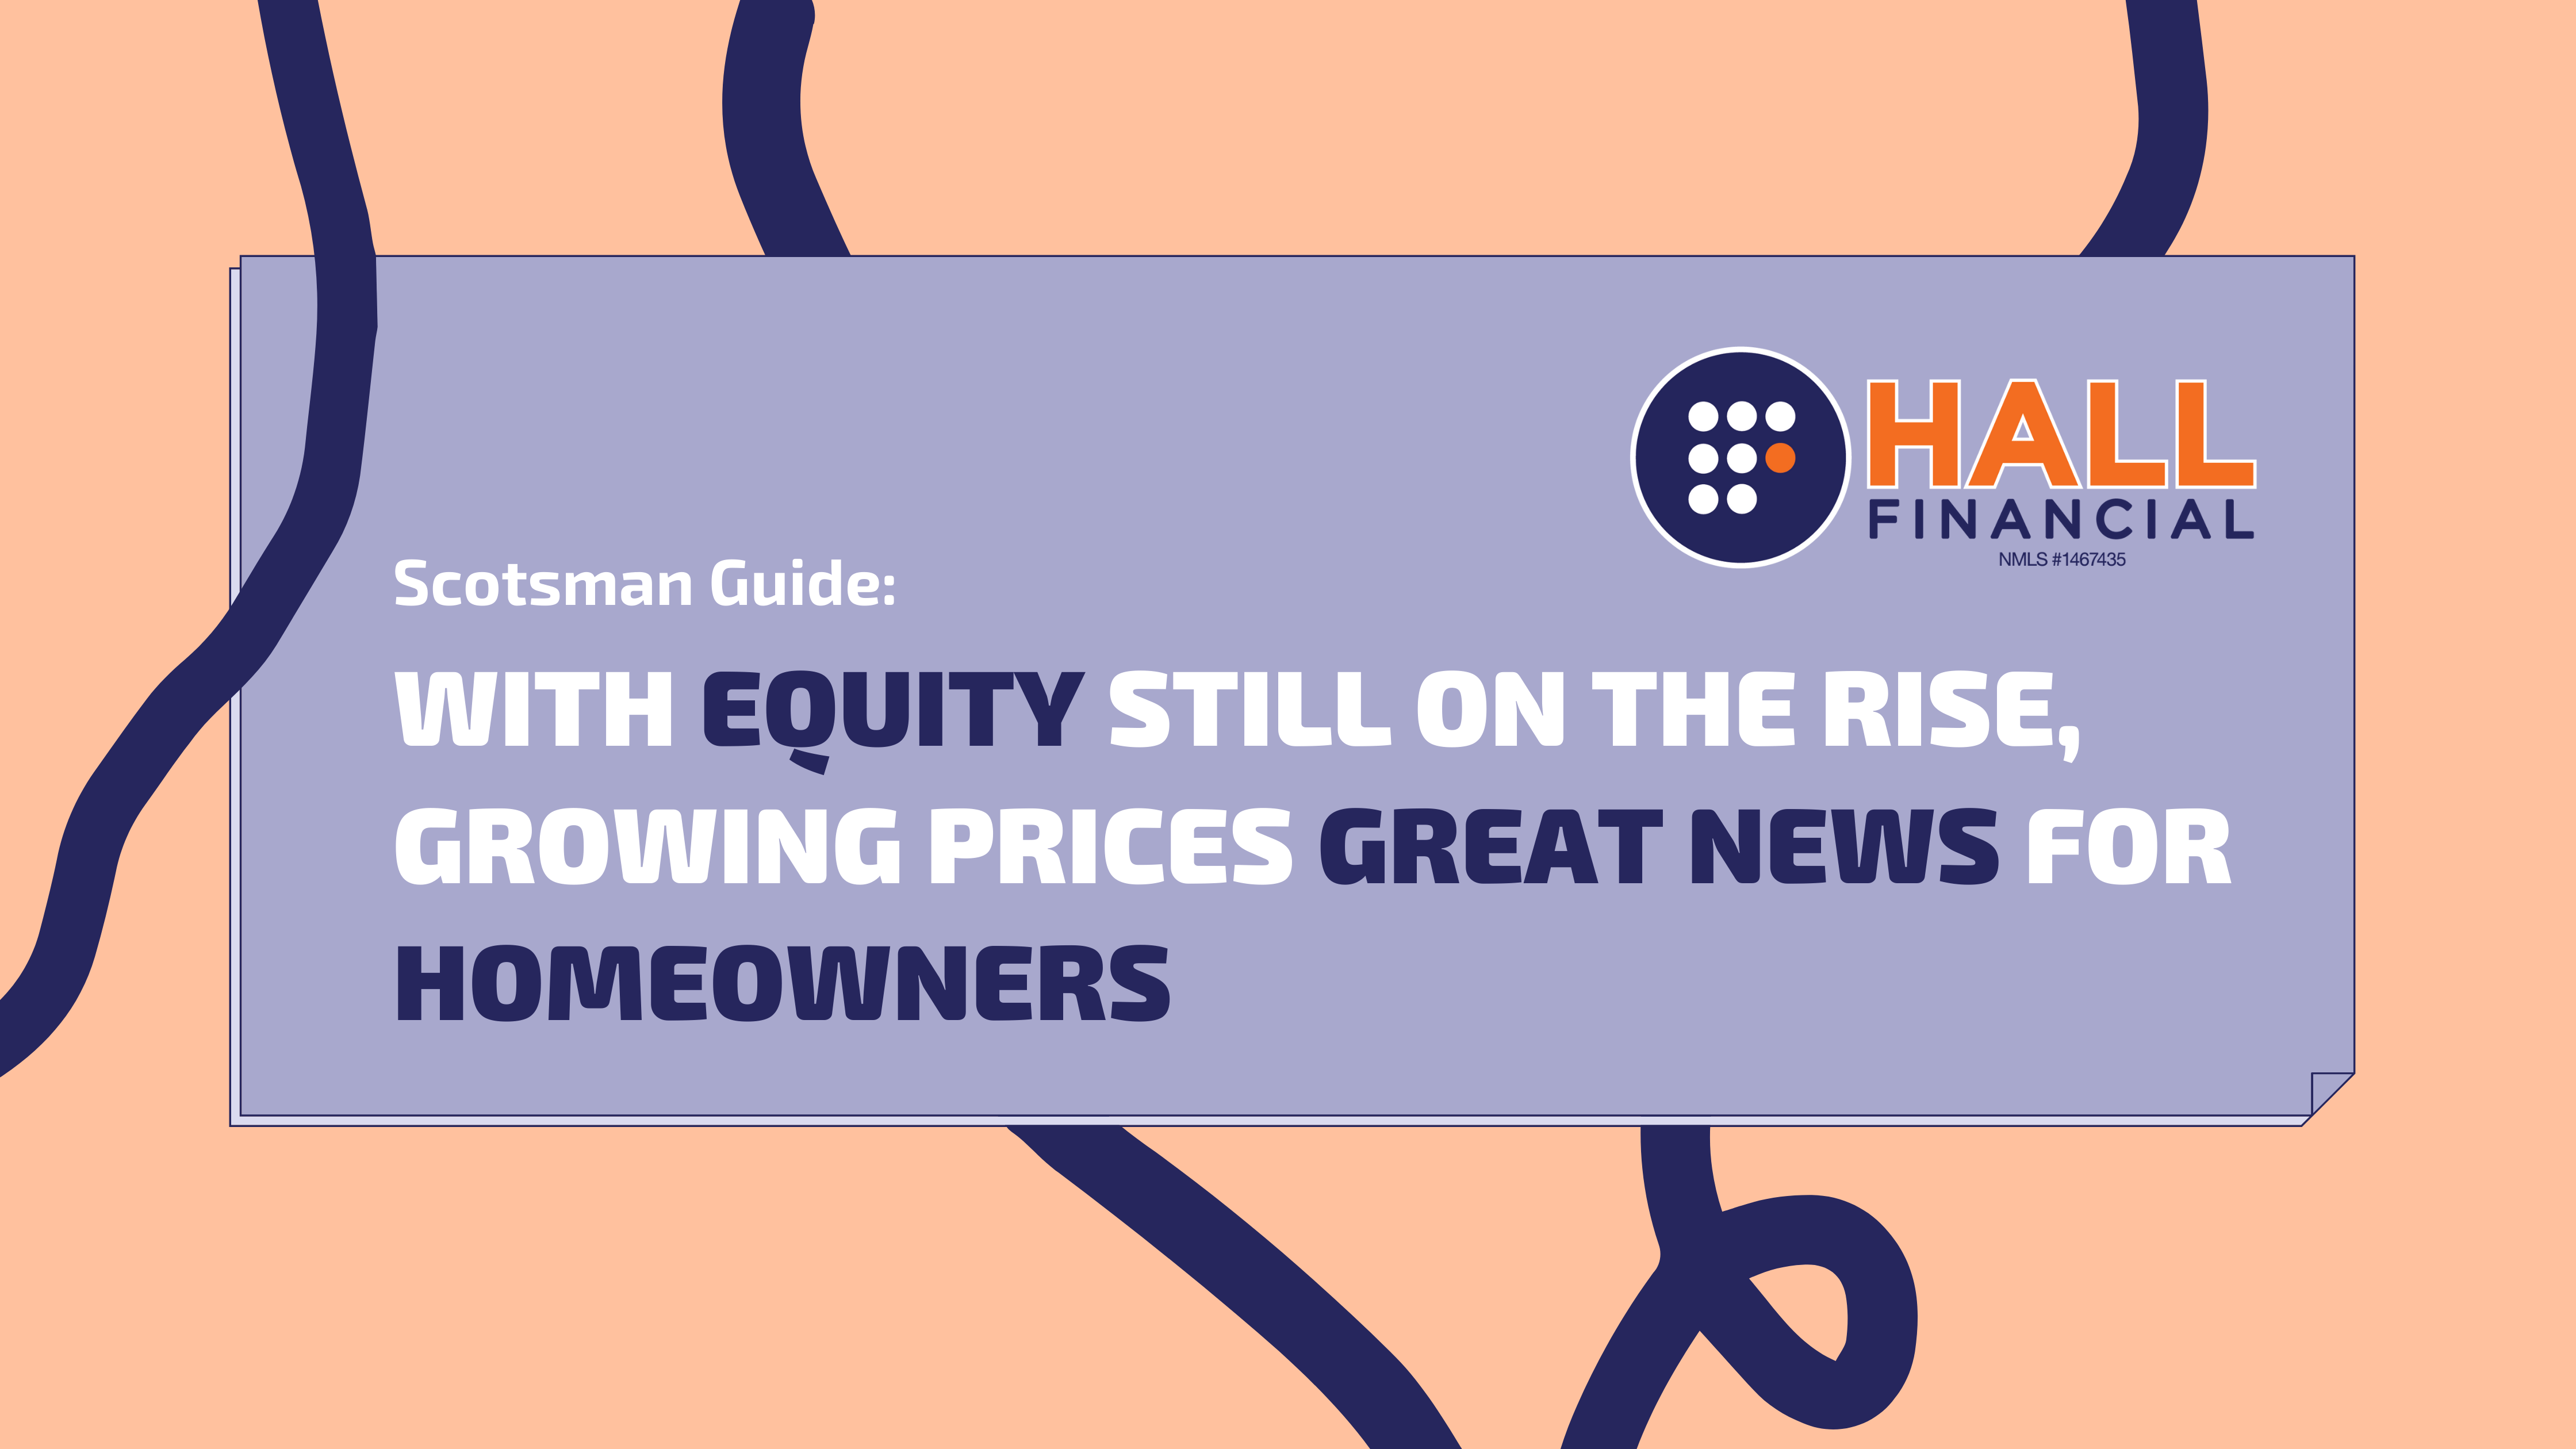 With equity still on the rise growing prices great news for homeowners 002